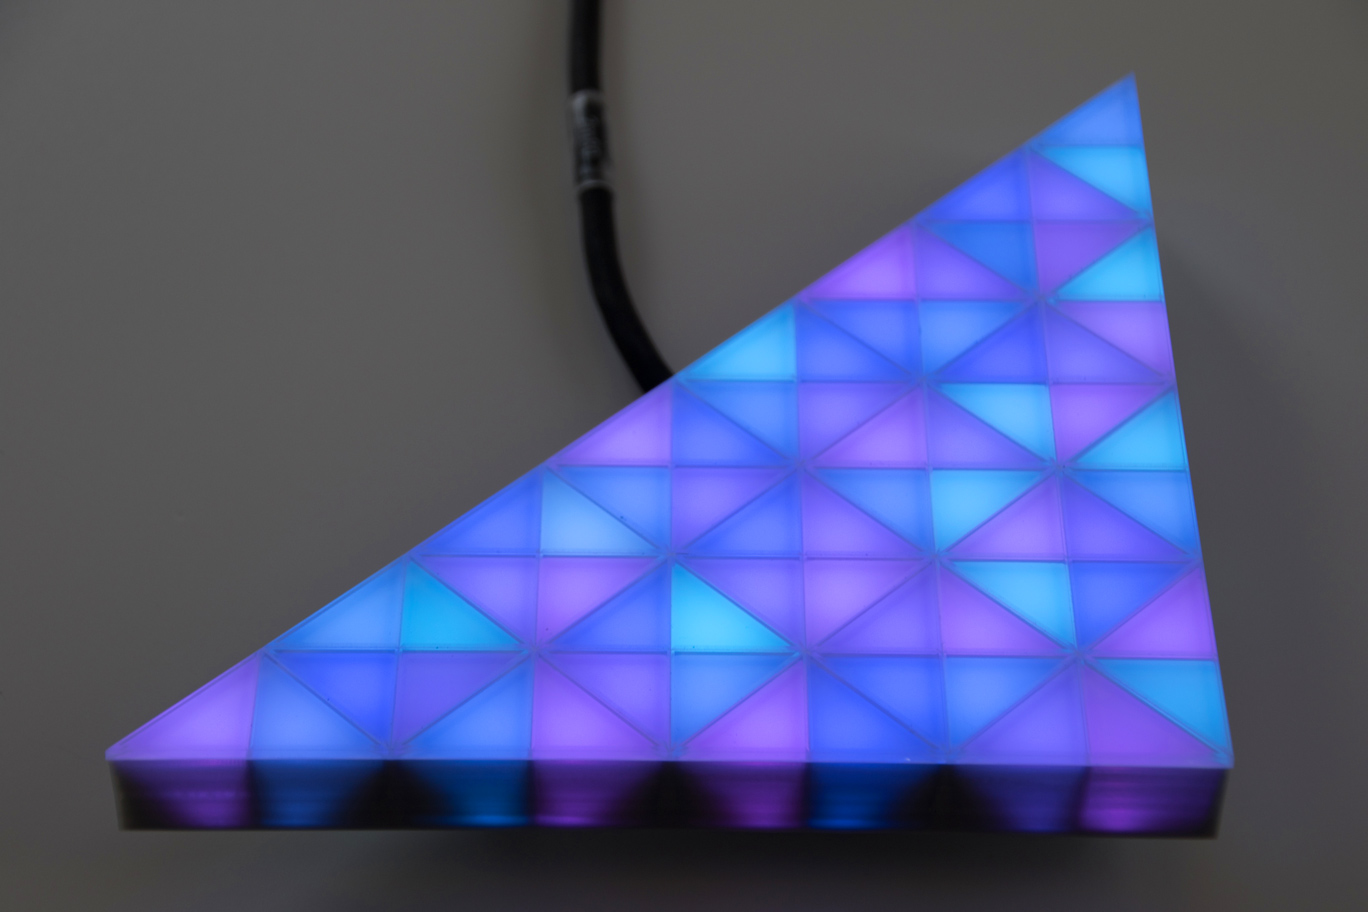 fully video capable, blue glowing LED module in a triangular shape